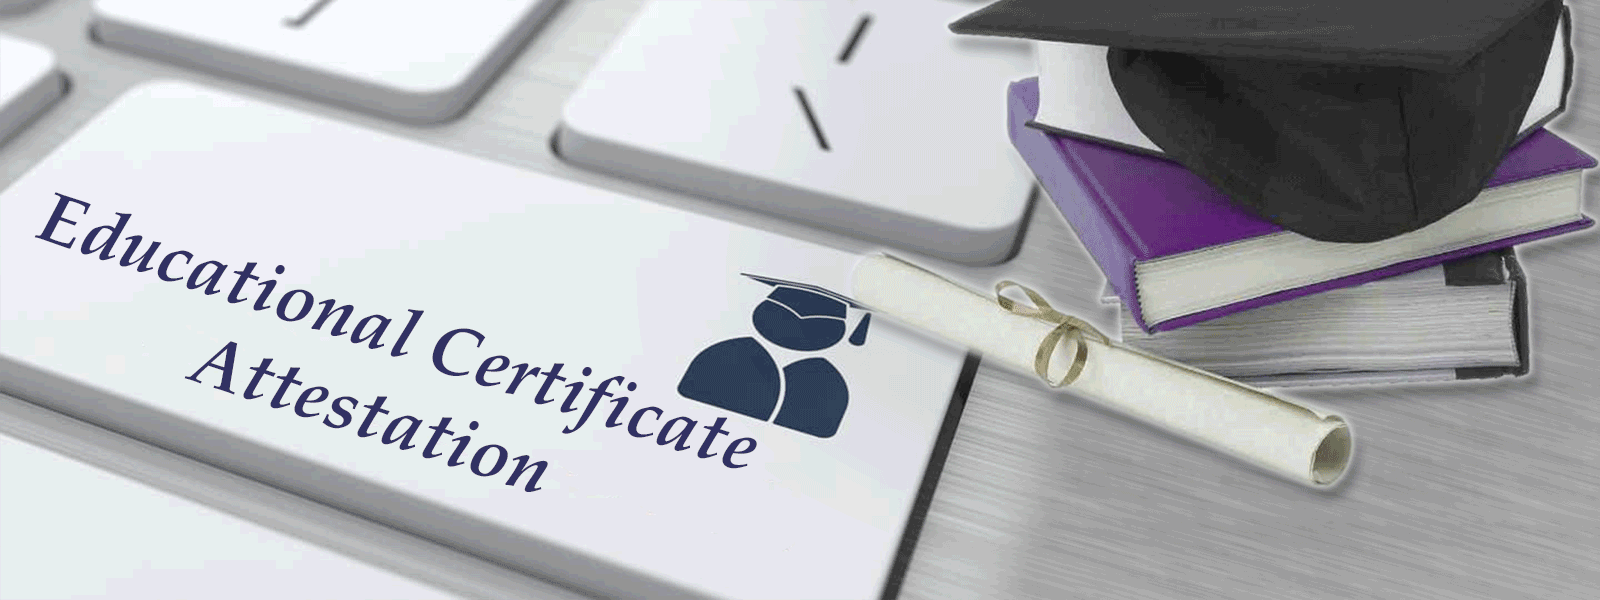 EDUCATIONAL CERTIFICATE ATTESTATION